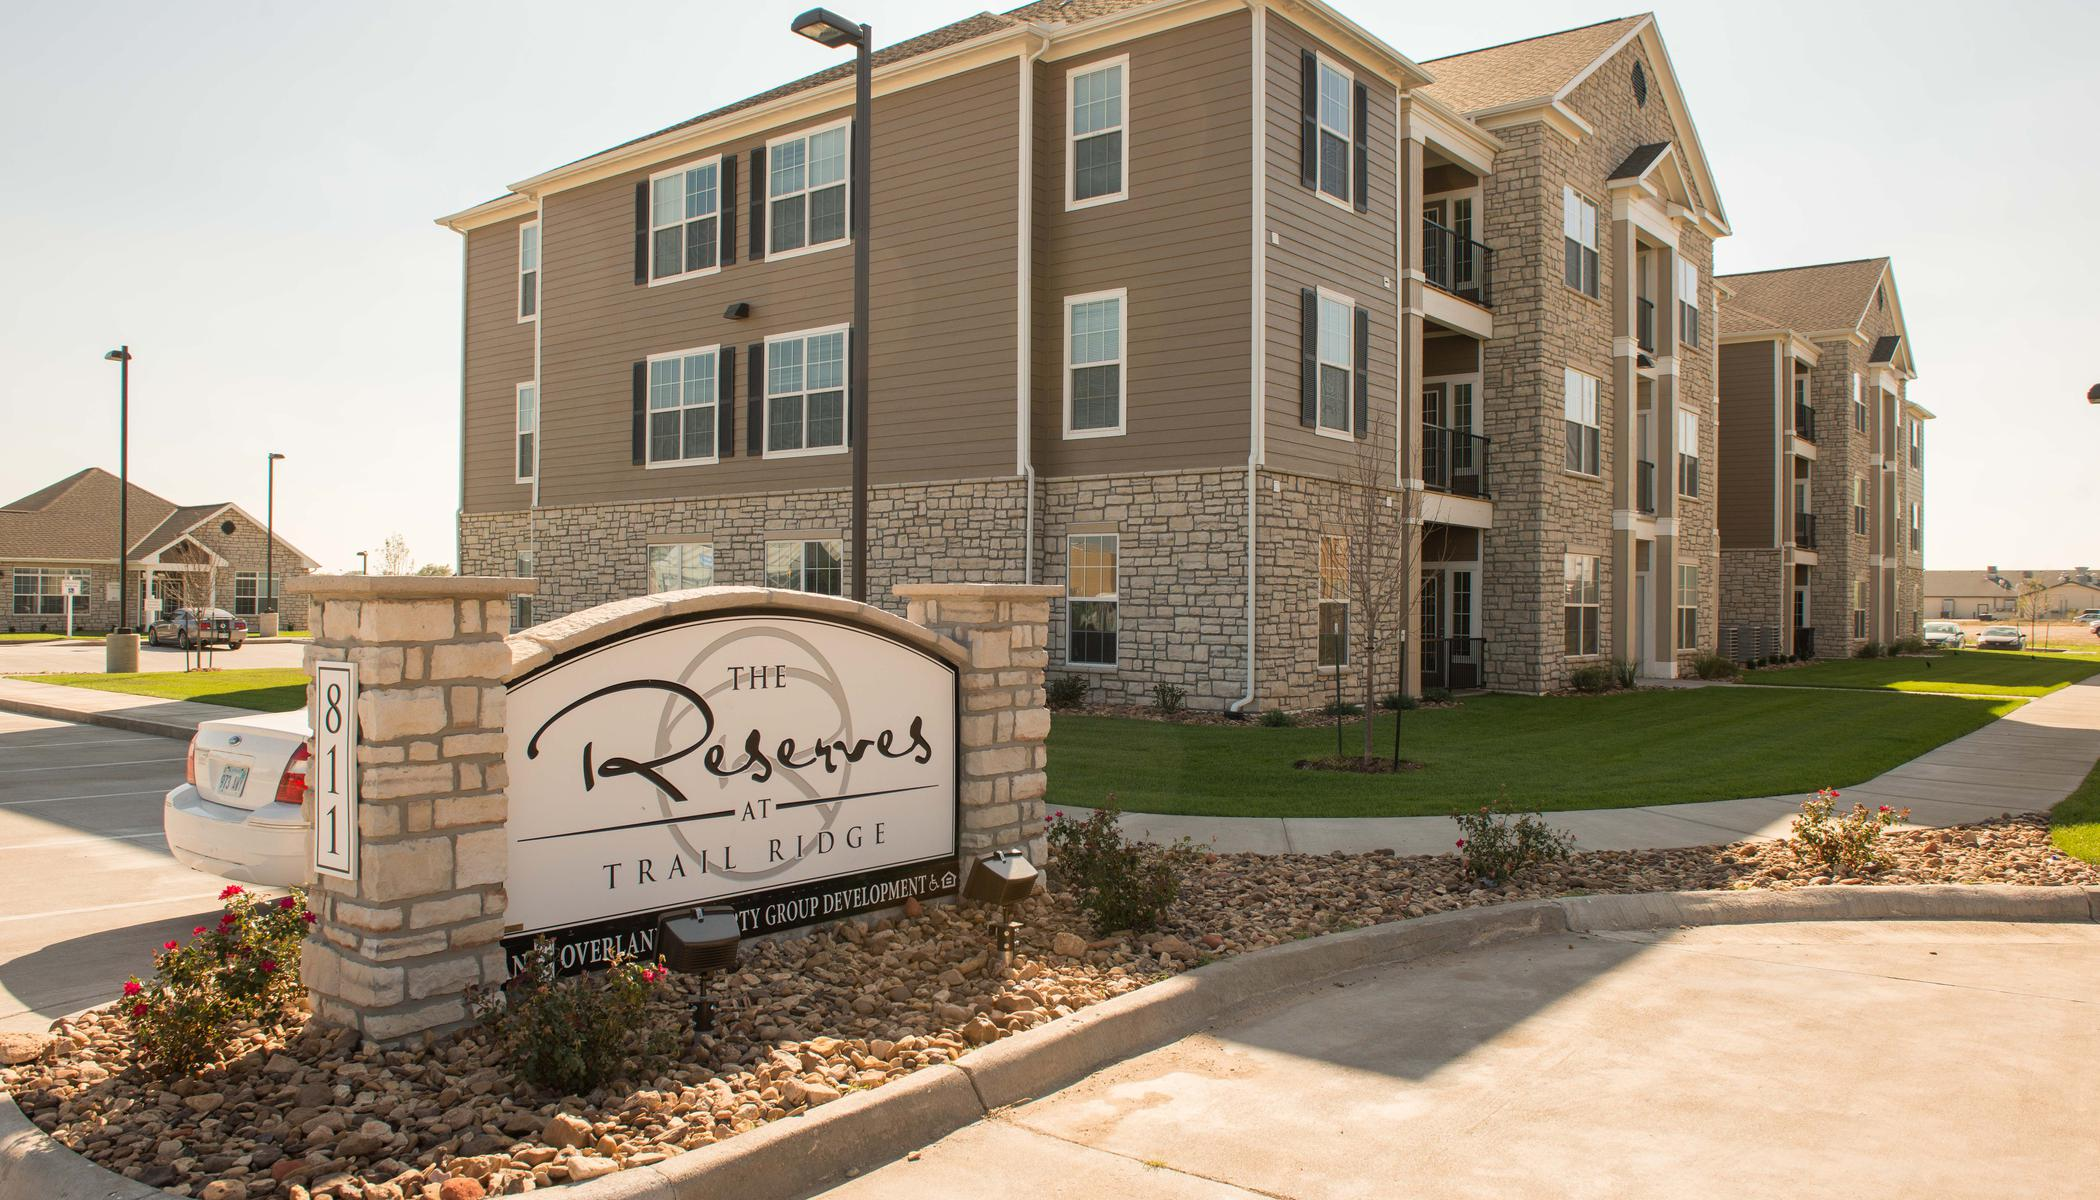 Exterior view of our apartments and main sign at The Reserves at Trail Ridge in Great Bend, KS